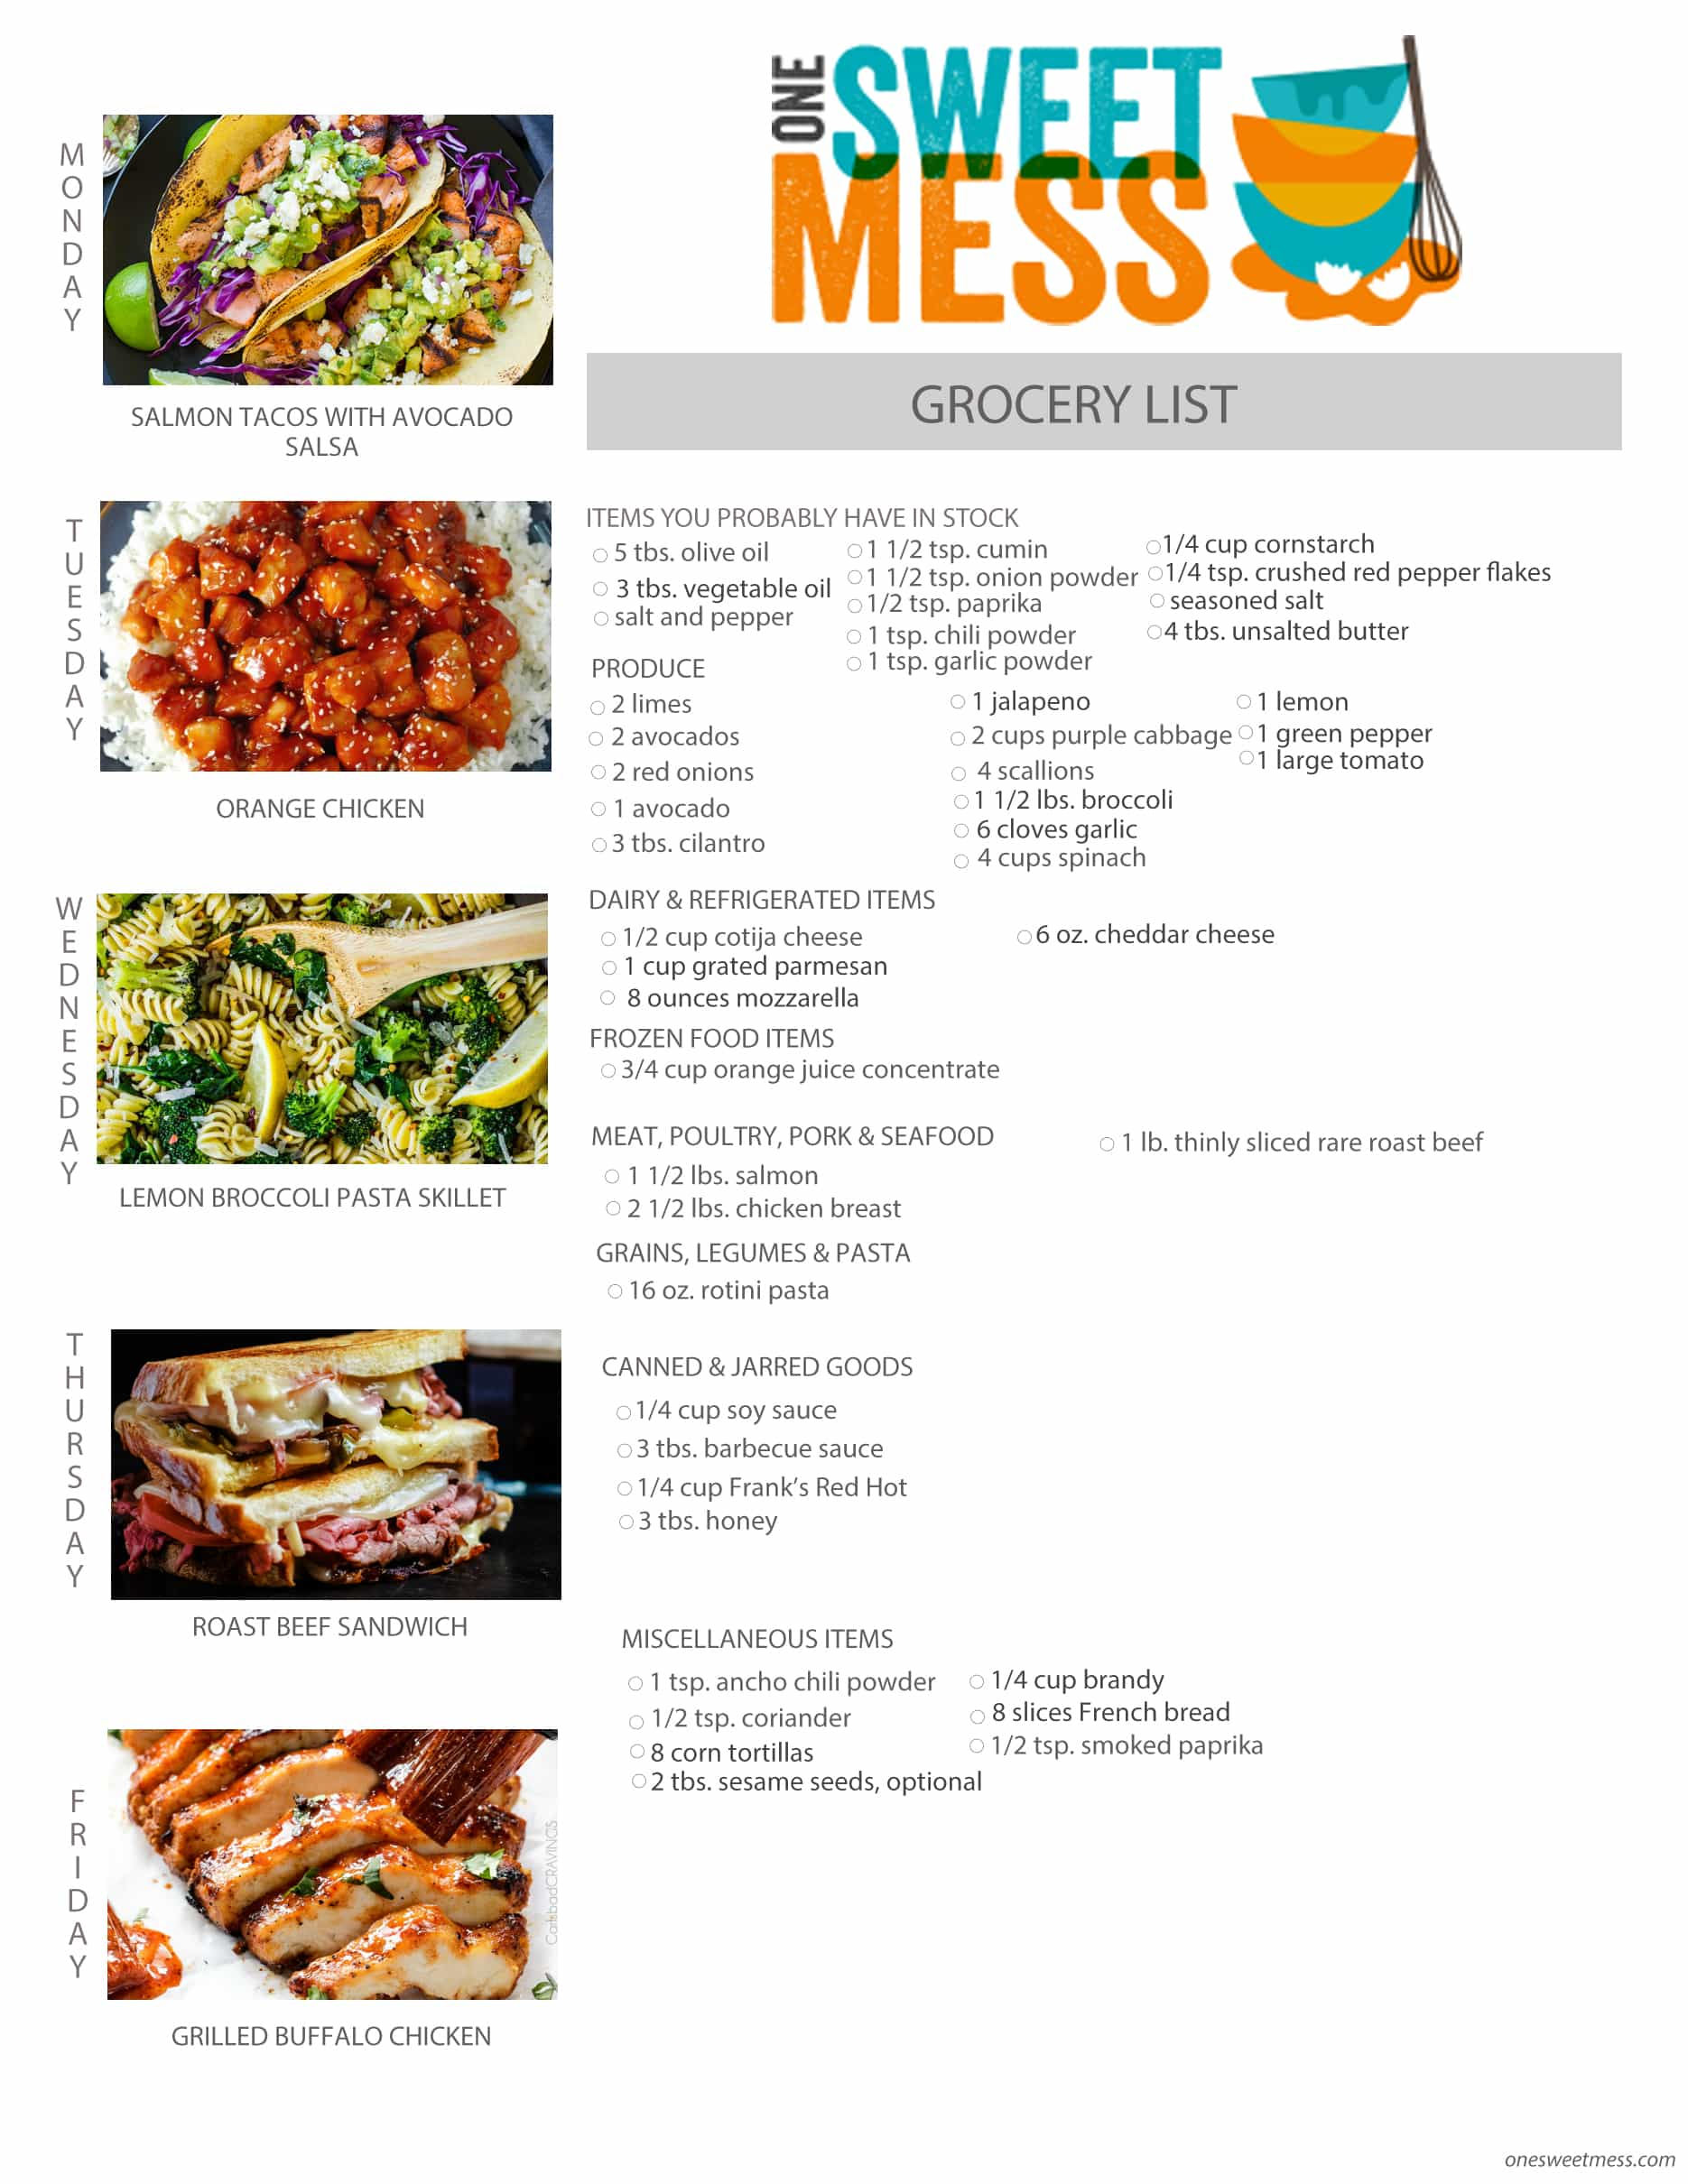 Week of April 11th, 2016 Weekly Meal Plan + Printable Grocery List